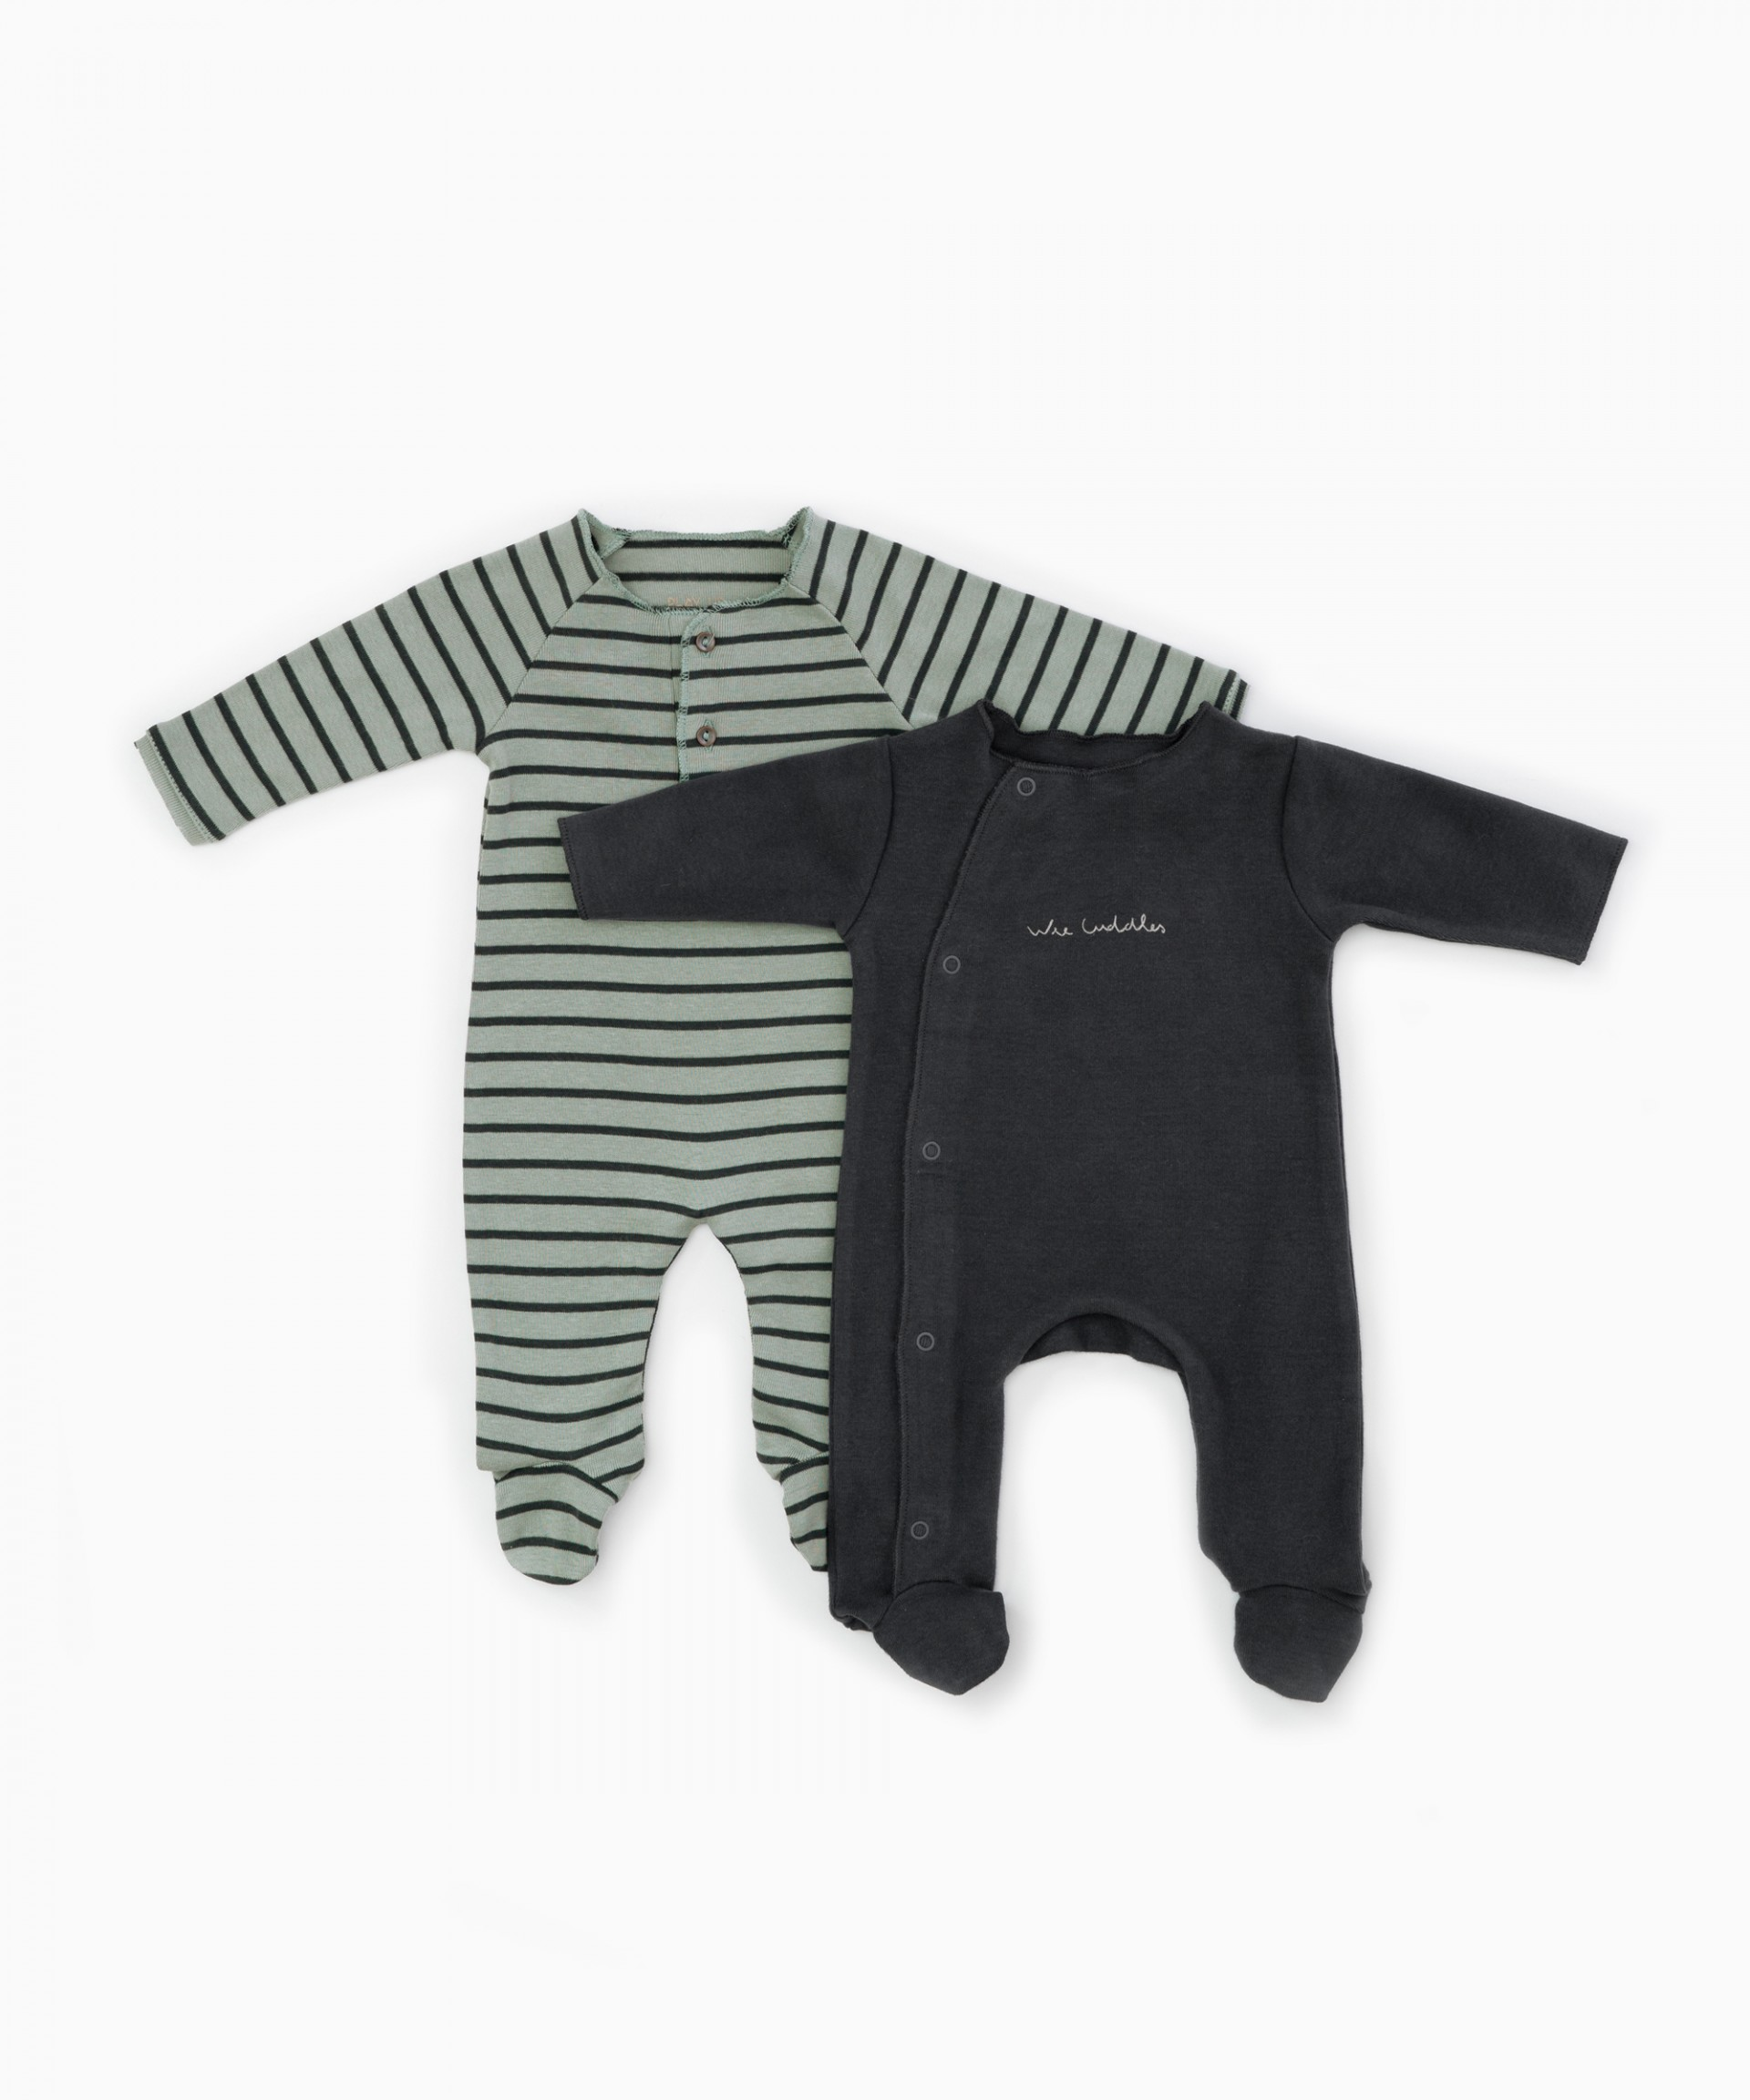 Pack of 2 striped baby grows | Woodwork